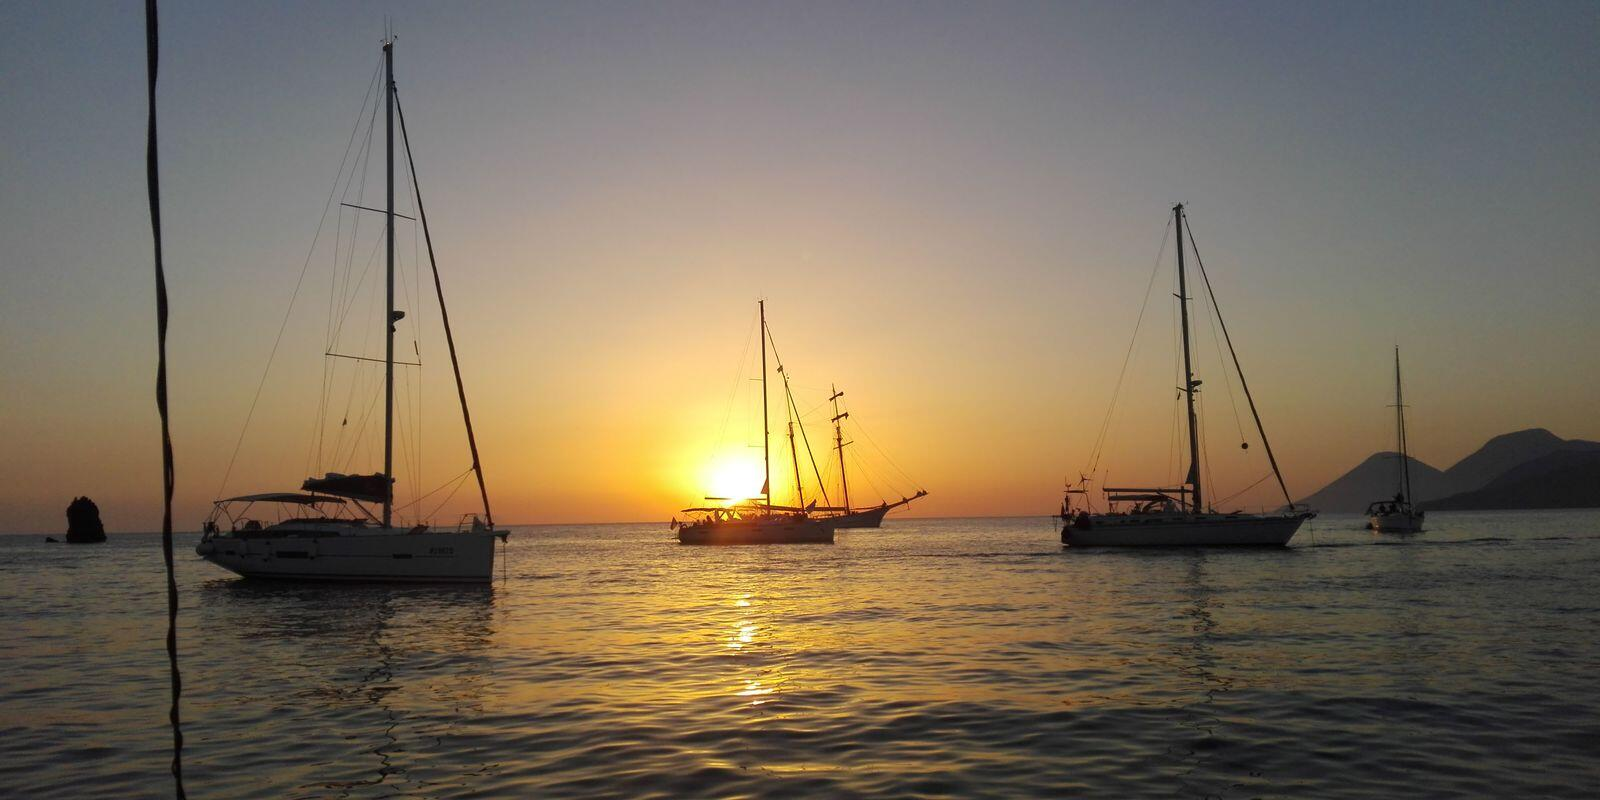 June in the Aeolian islands - the most beautiful time to sail between the islands!